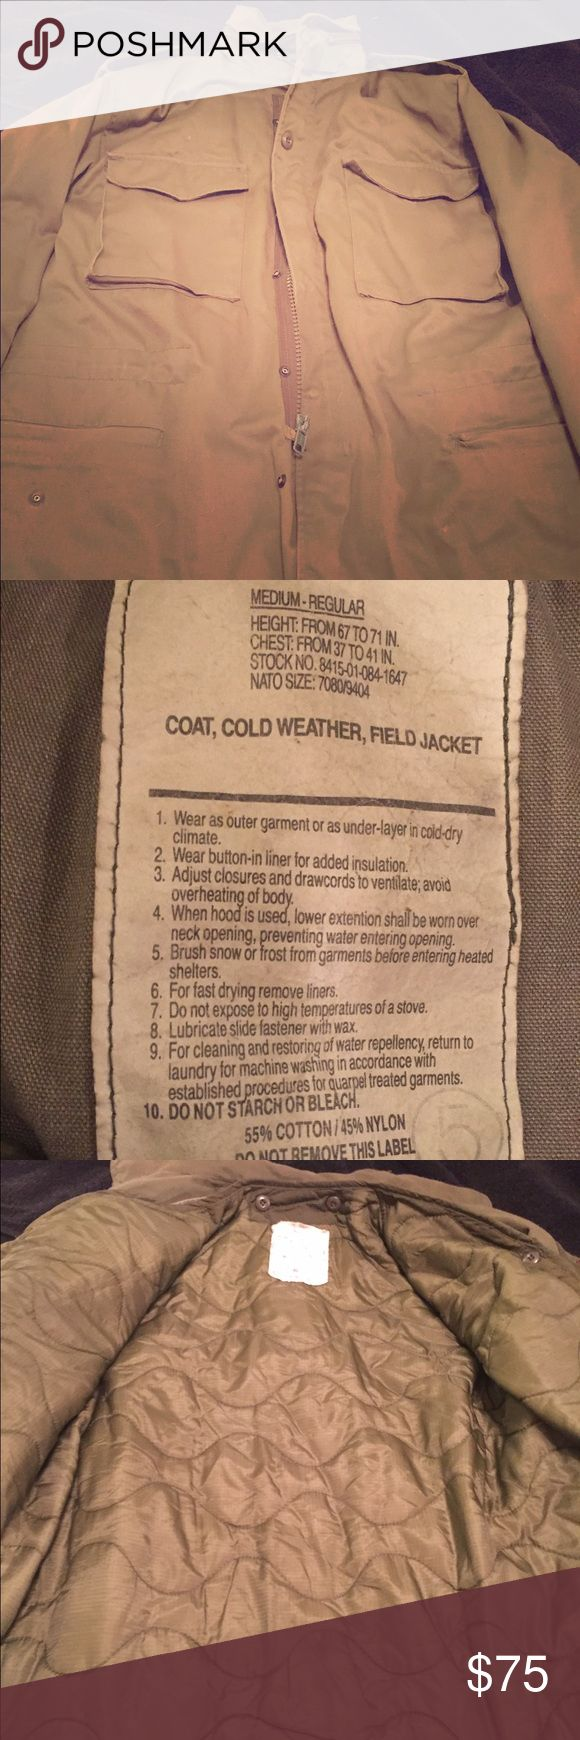 True Vintage M-65 US Military Field Jacket True Vintage US Military issue Cold Weather Field Jacket. Very good condition. No holes or wear. Lining is perfect. Excellent choice for upcoming winter!!! Jackets & Coats Military & Field